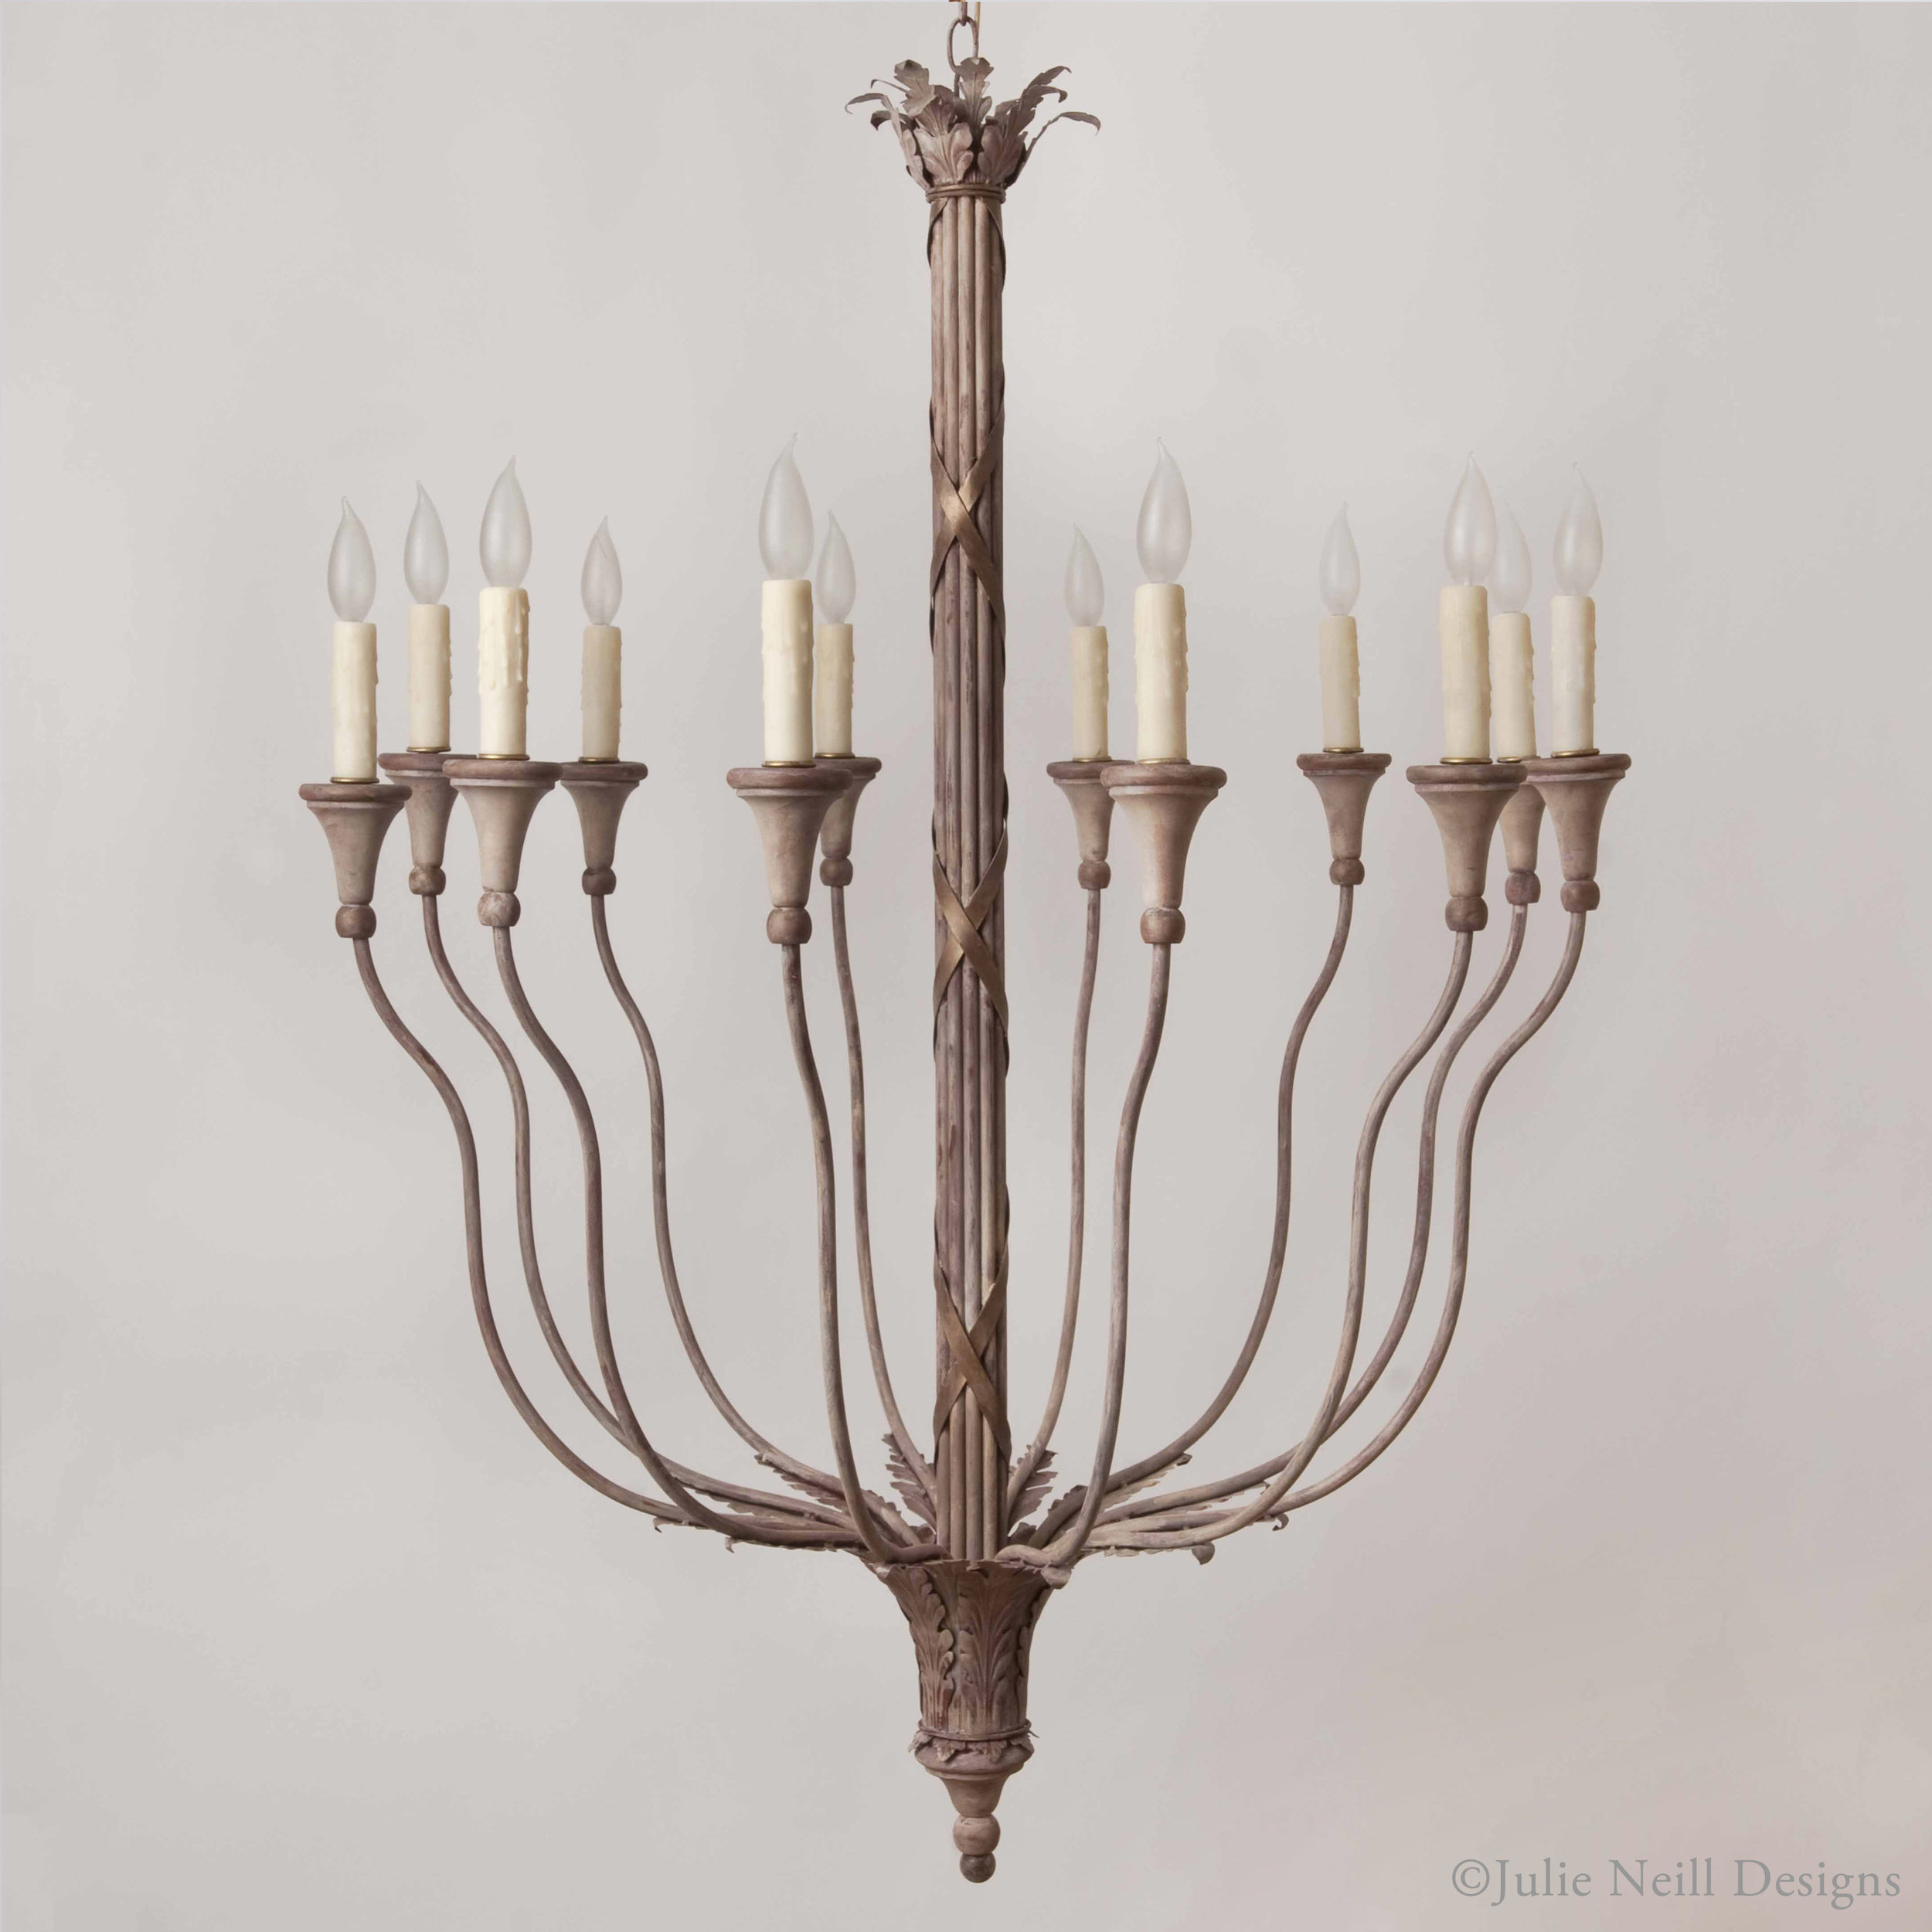 Pamela_Chandelier_JulieNeillDesigns